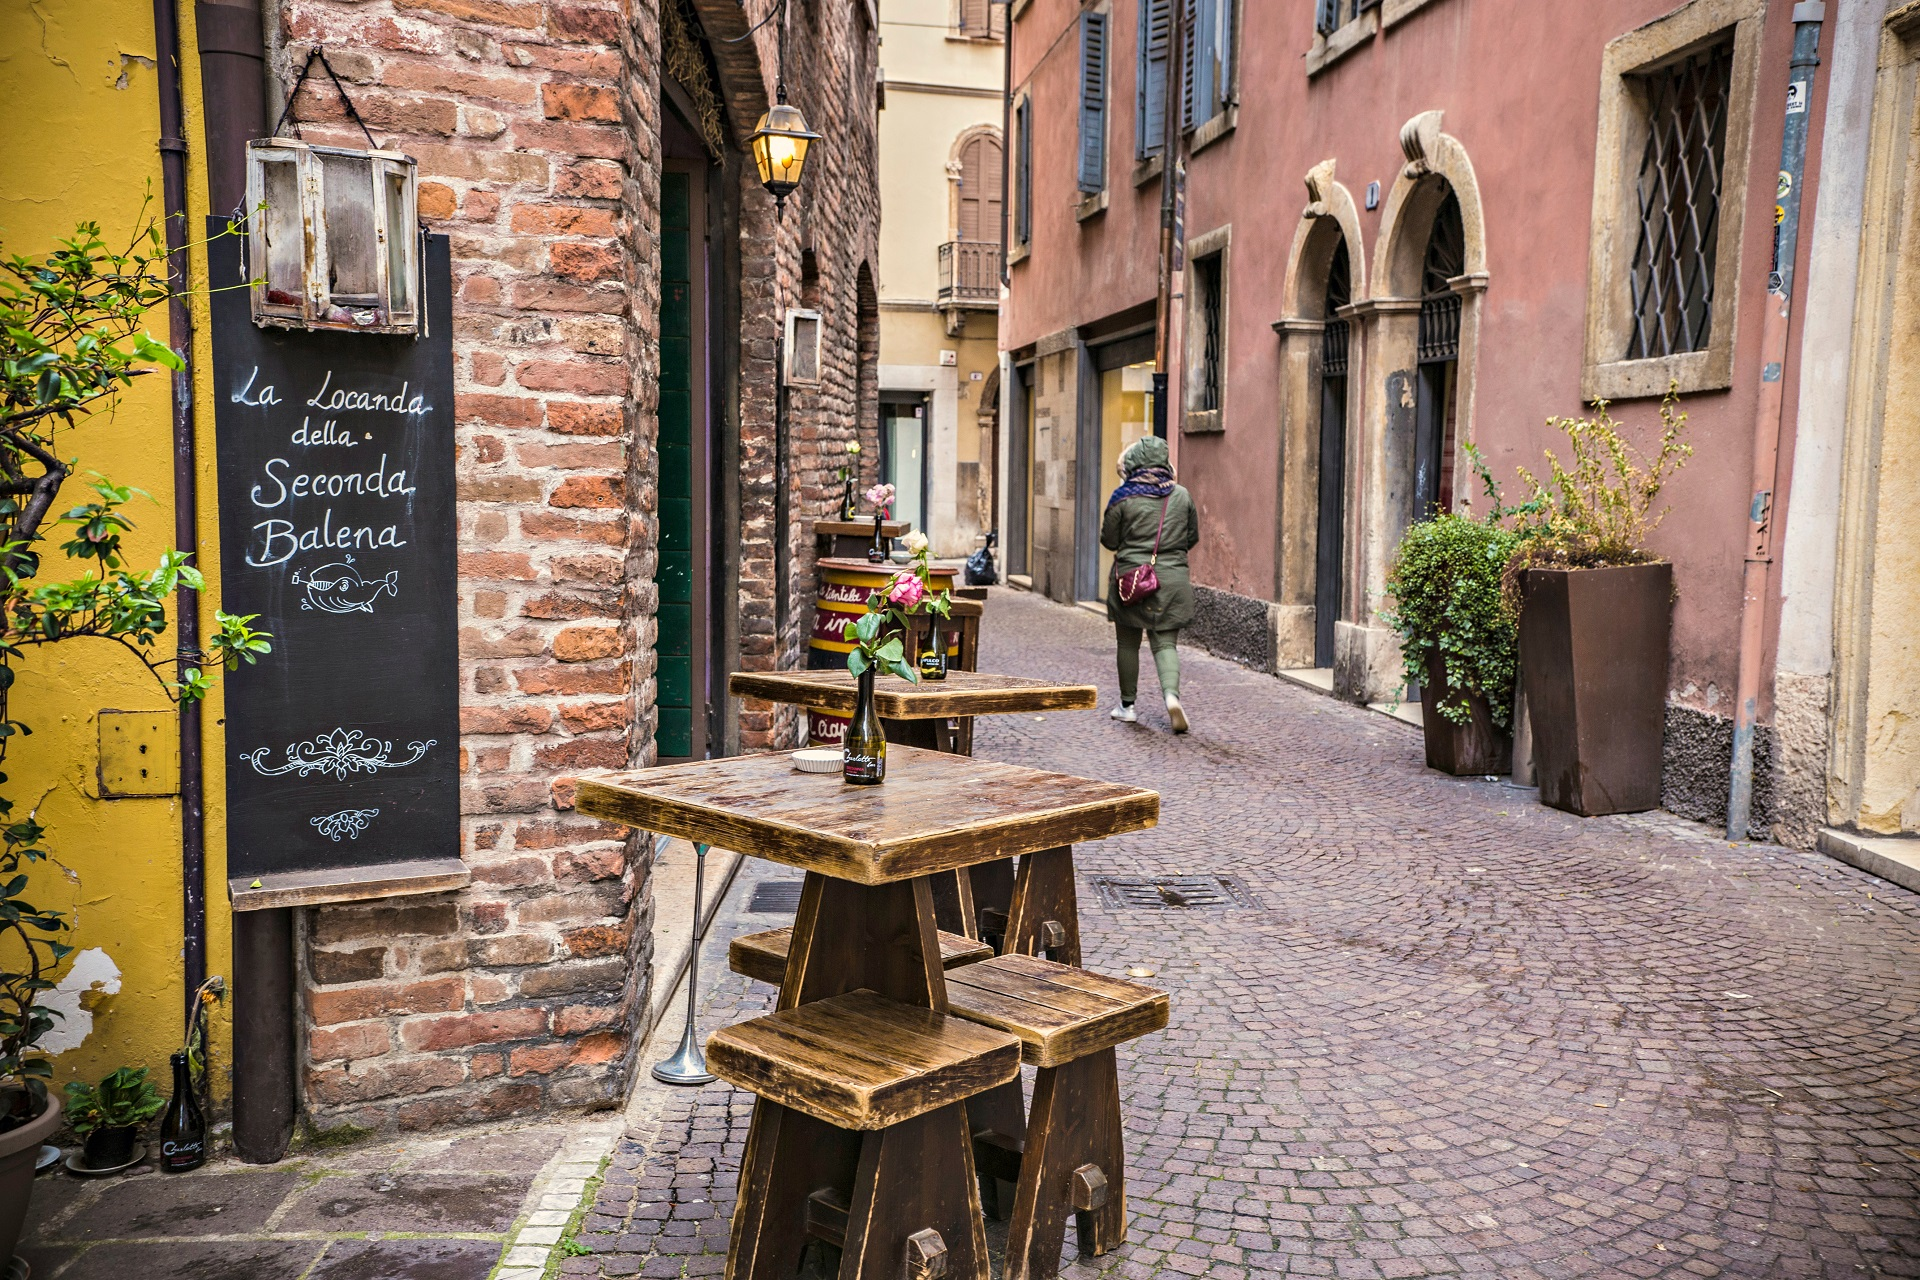 A bar in the streets of Verona